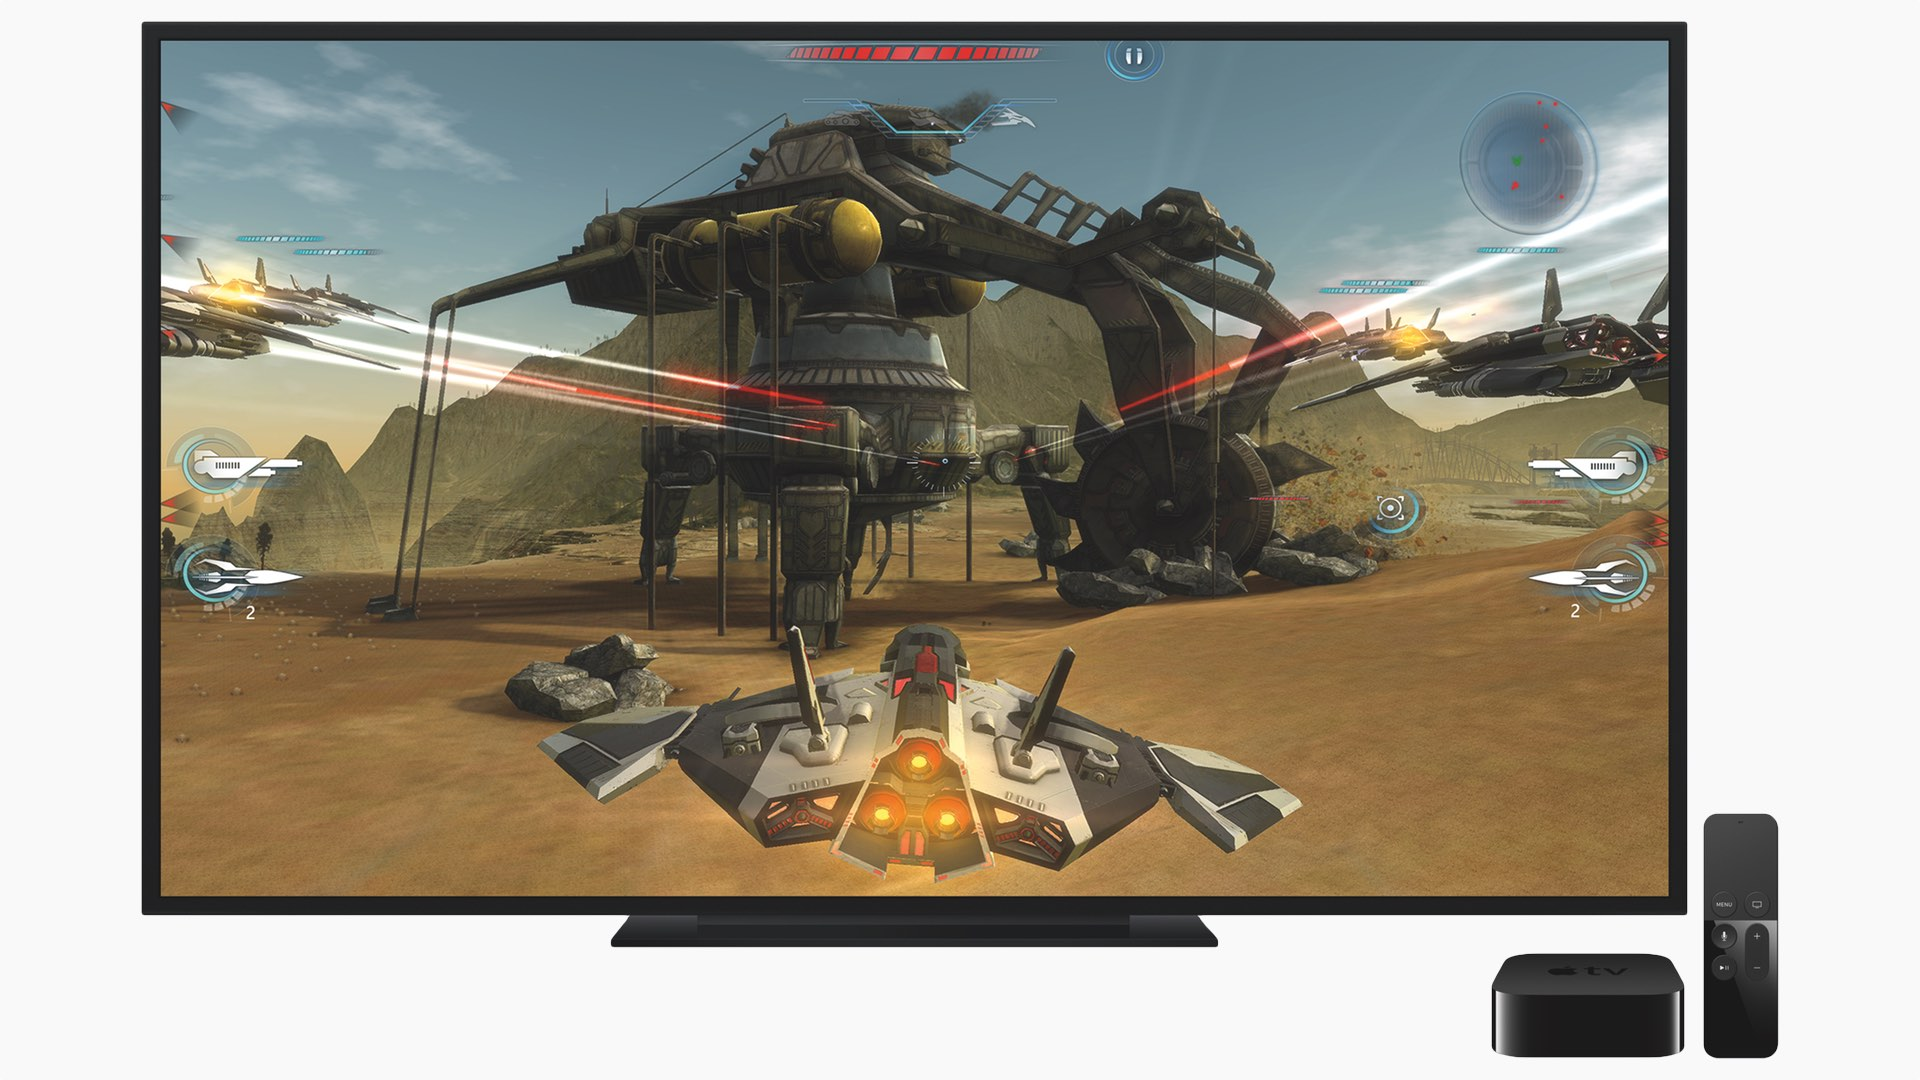 The new Apple TV, its remote and some TV gaming